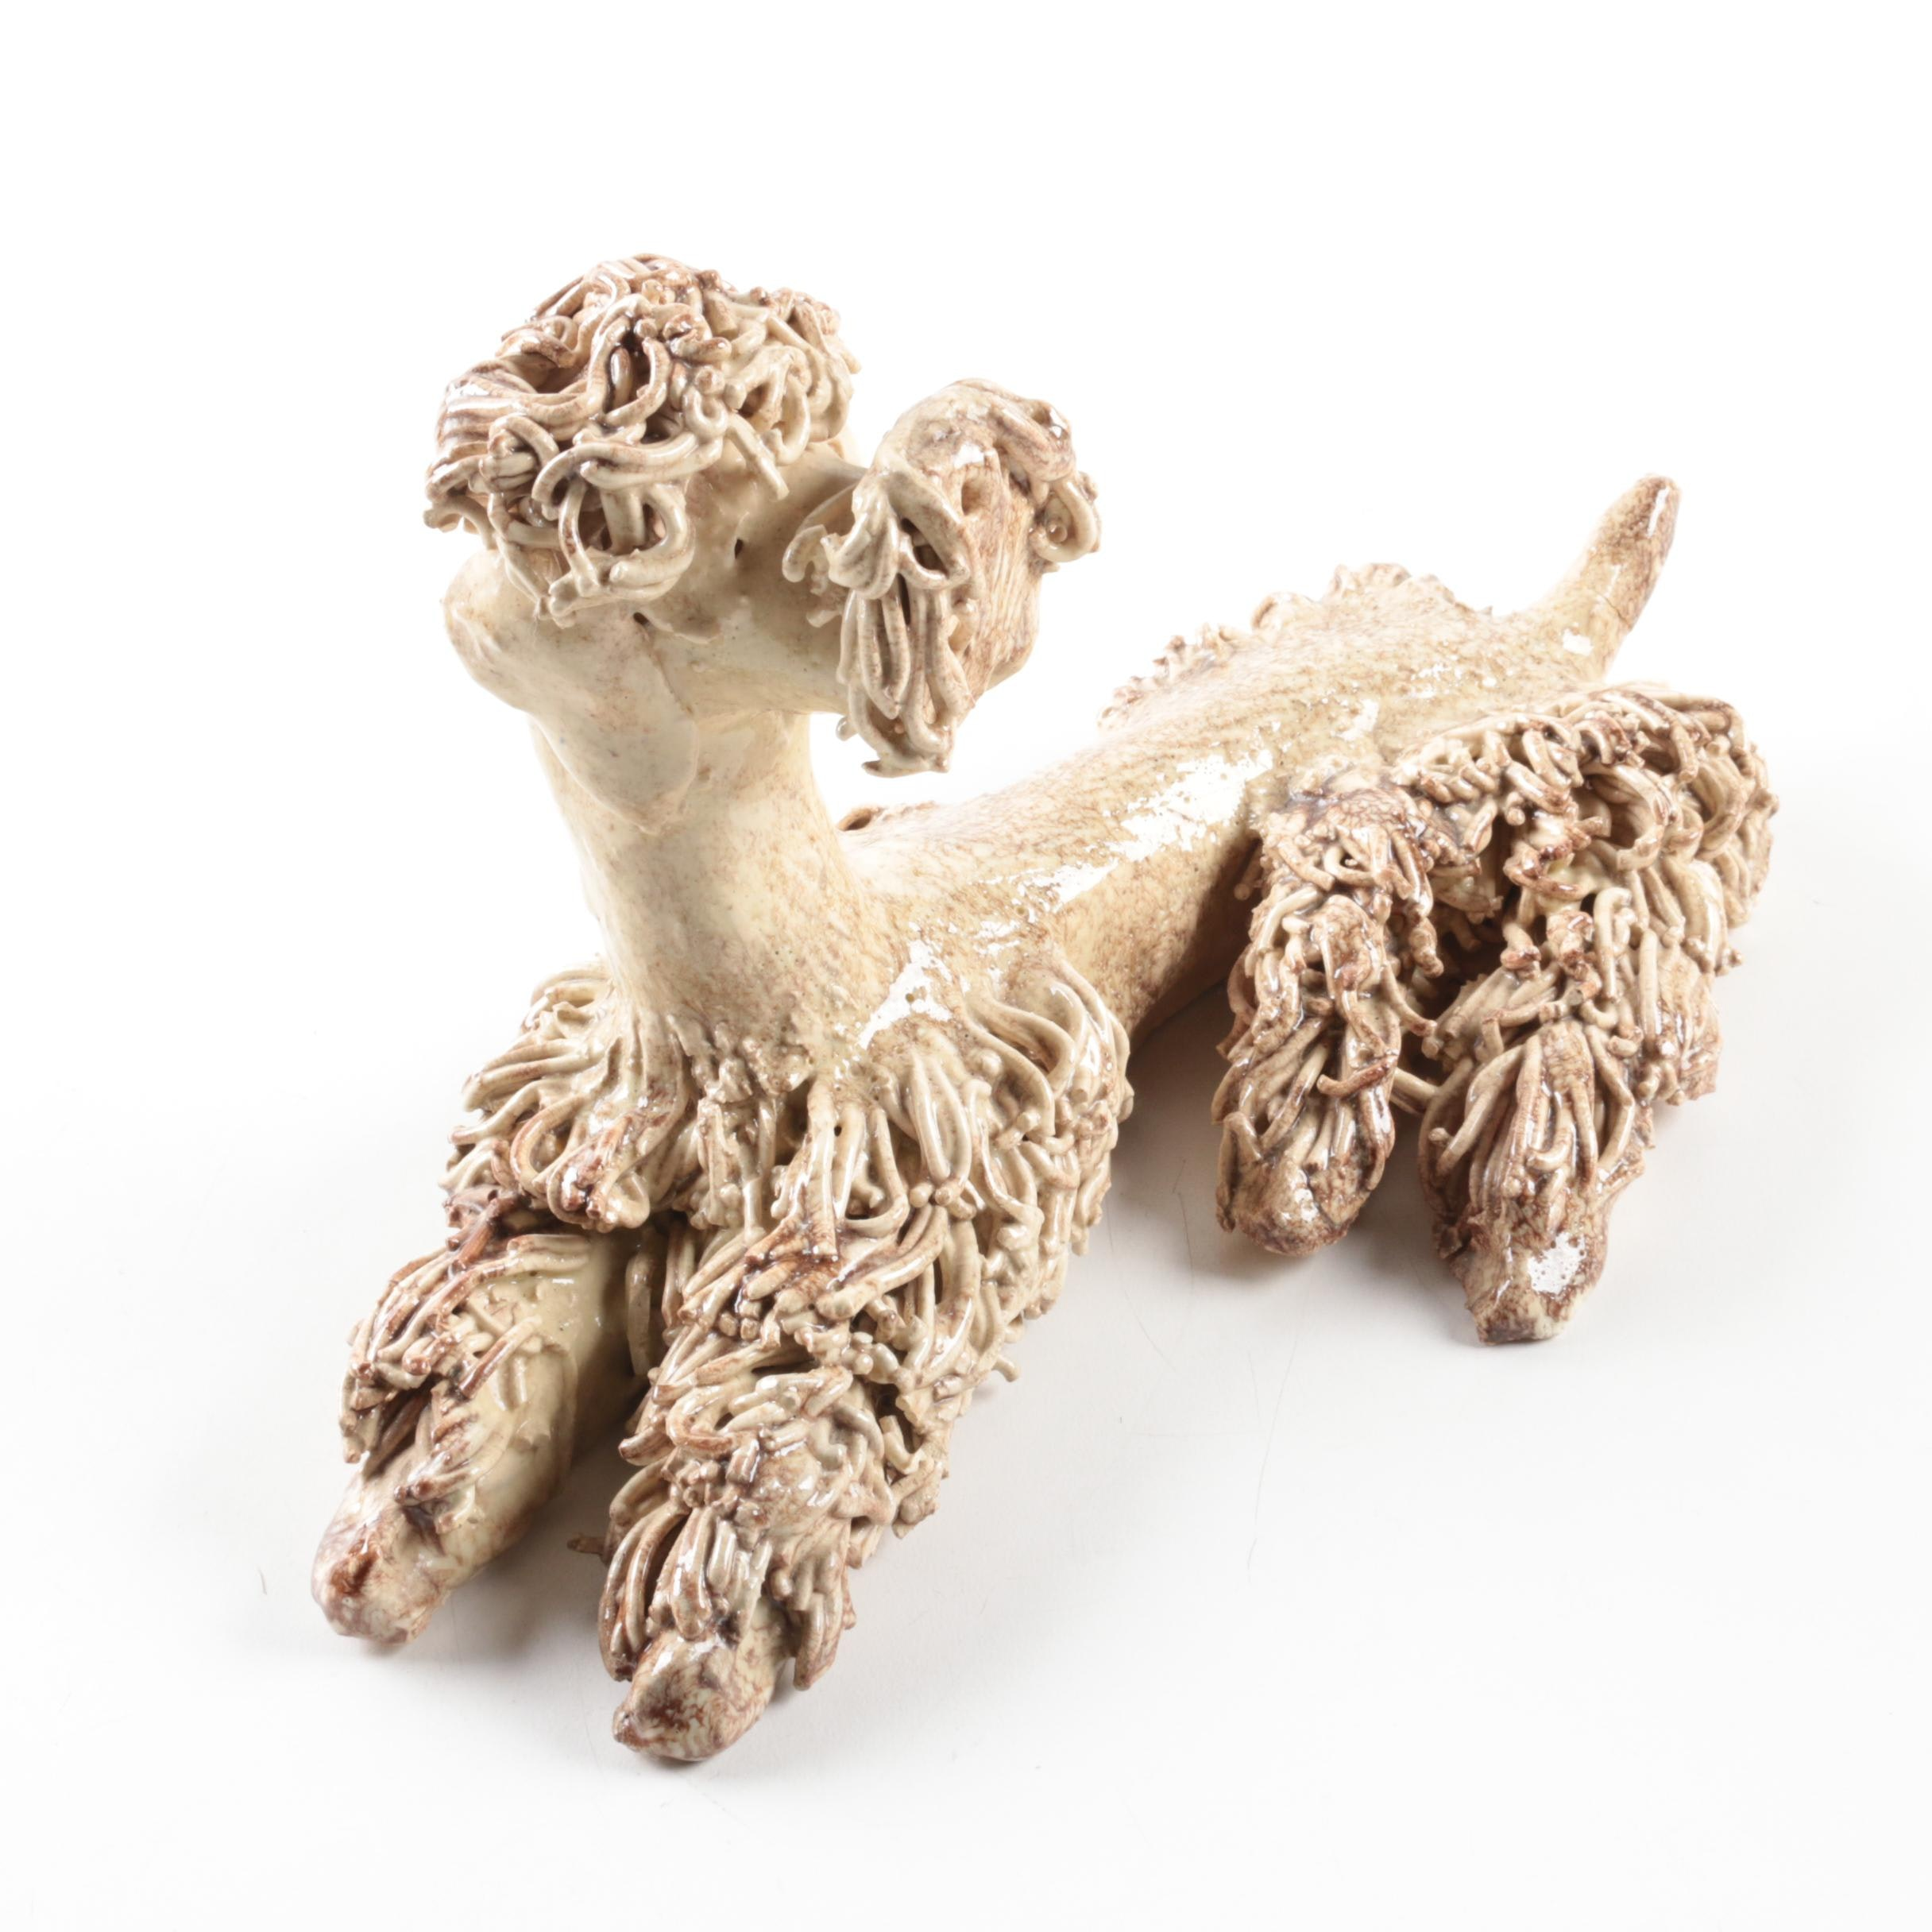 Glazed Ceramic Shaggy Dog Figurine